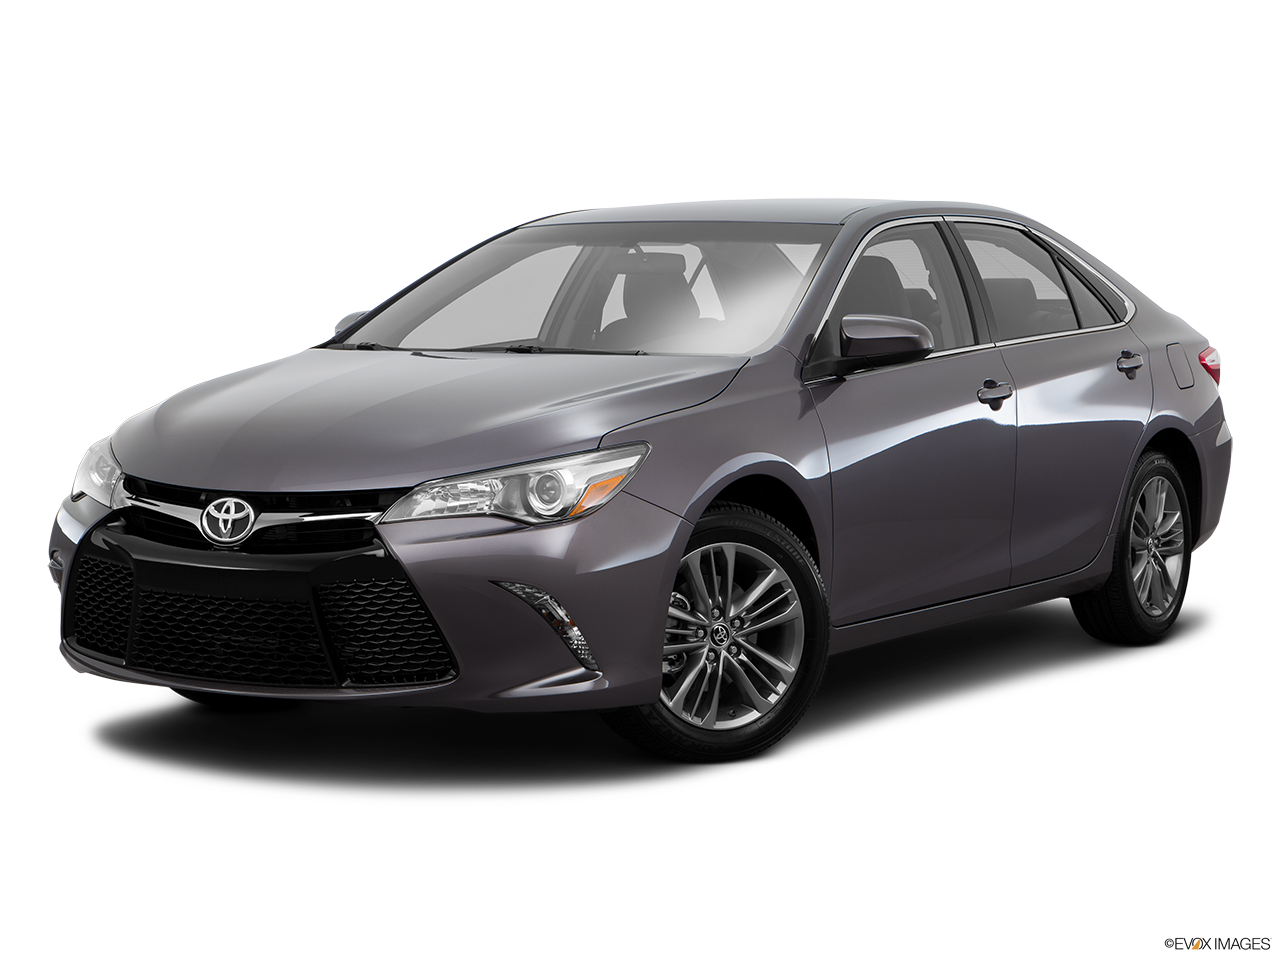 Test Drive A 2017 Toyota Camry at Toyota of Glendale in Los Angeles